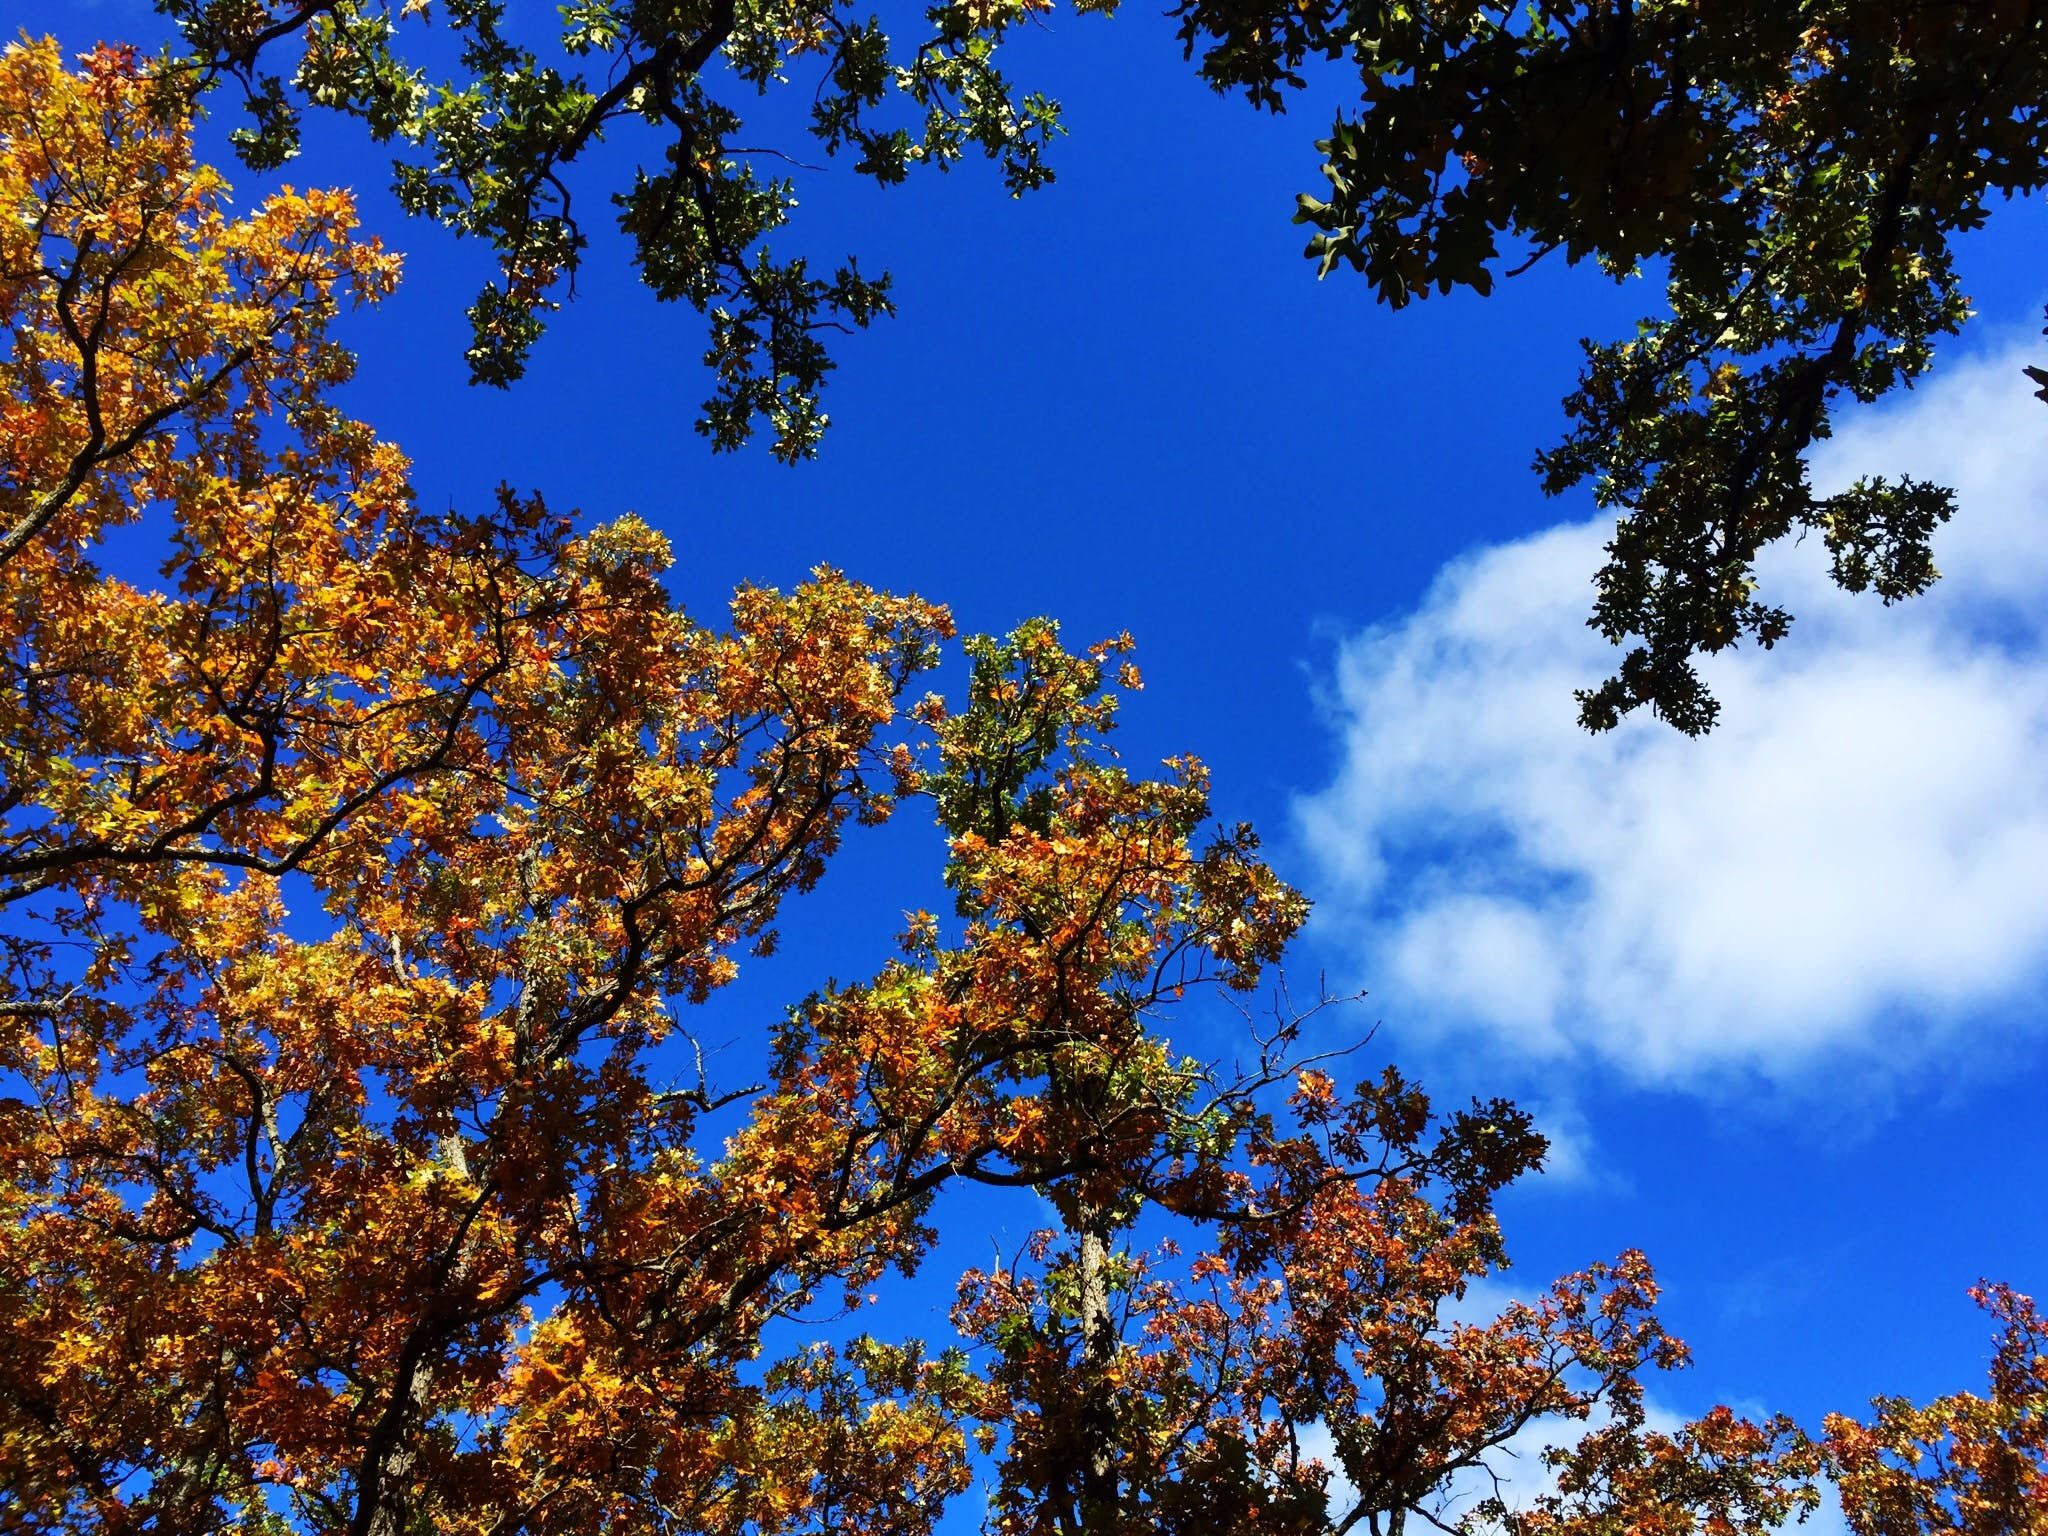 Free stock photo of sky, clouds, blue, autumn